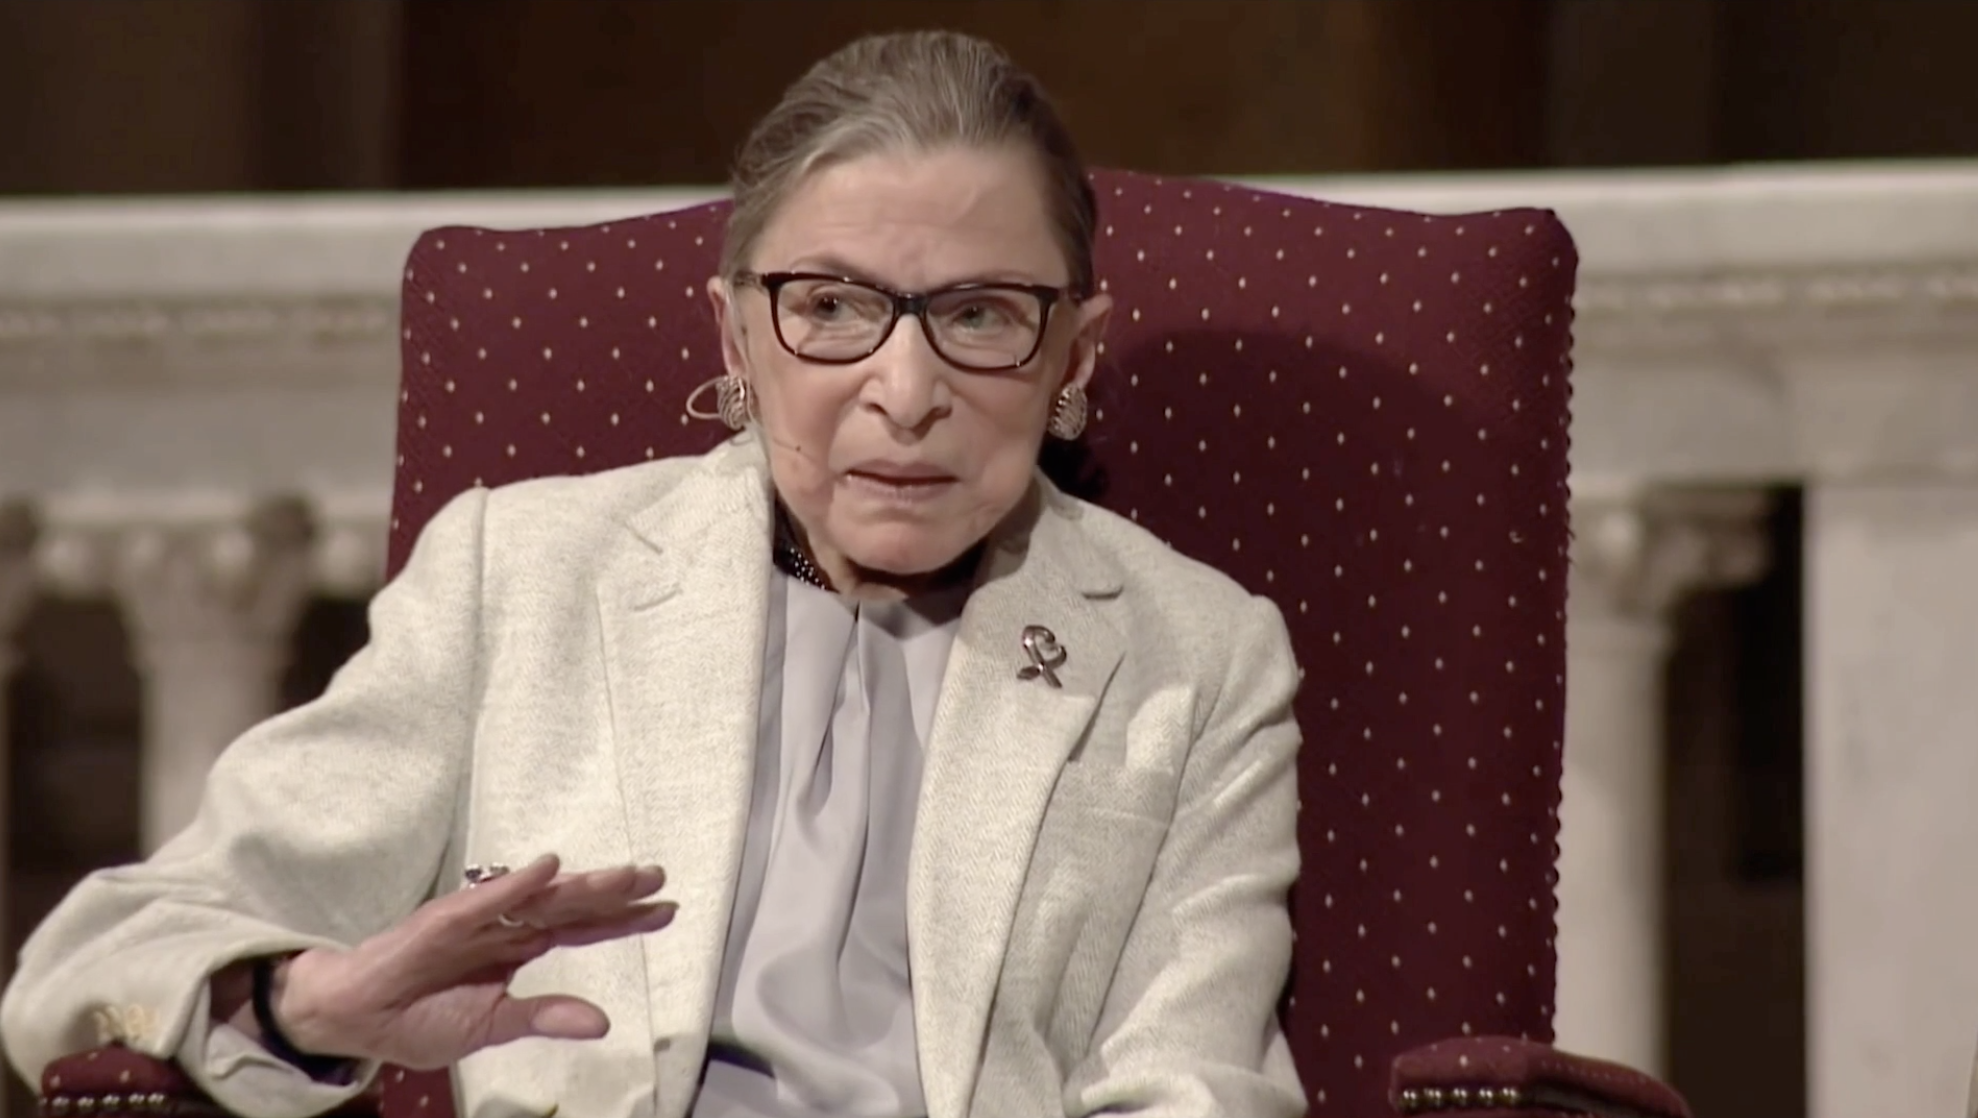 The life of 'notorious' Supreme Court Justice Ruth Bader Ginsburg, who has died aged 87